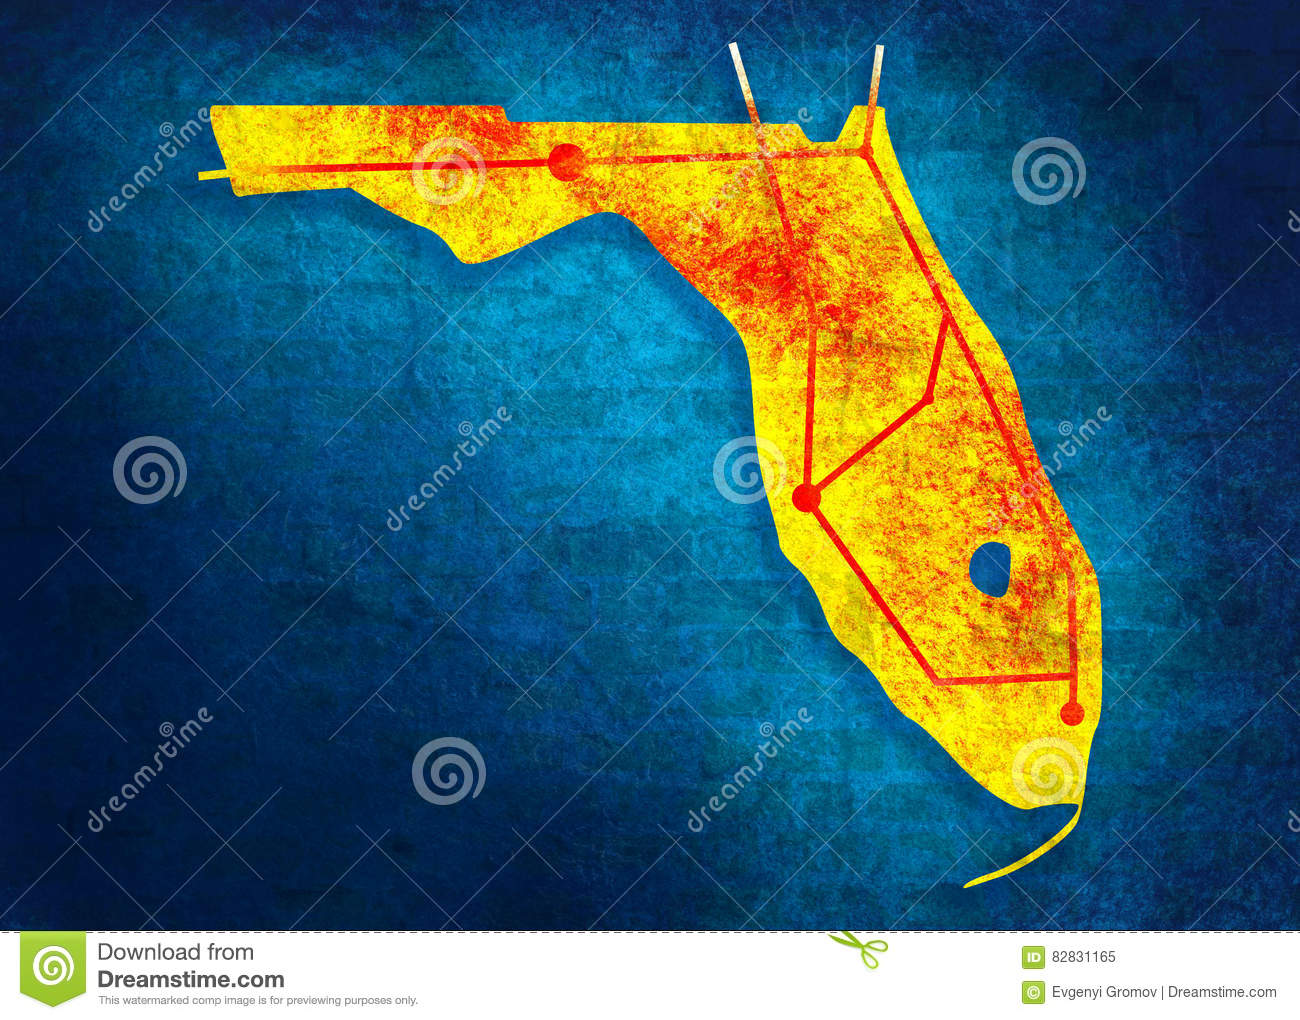 Florida State Road Map.Florida State Road Map Stock Image Image Of Locations 82831165